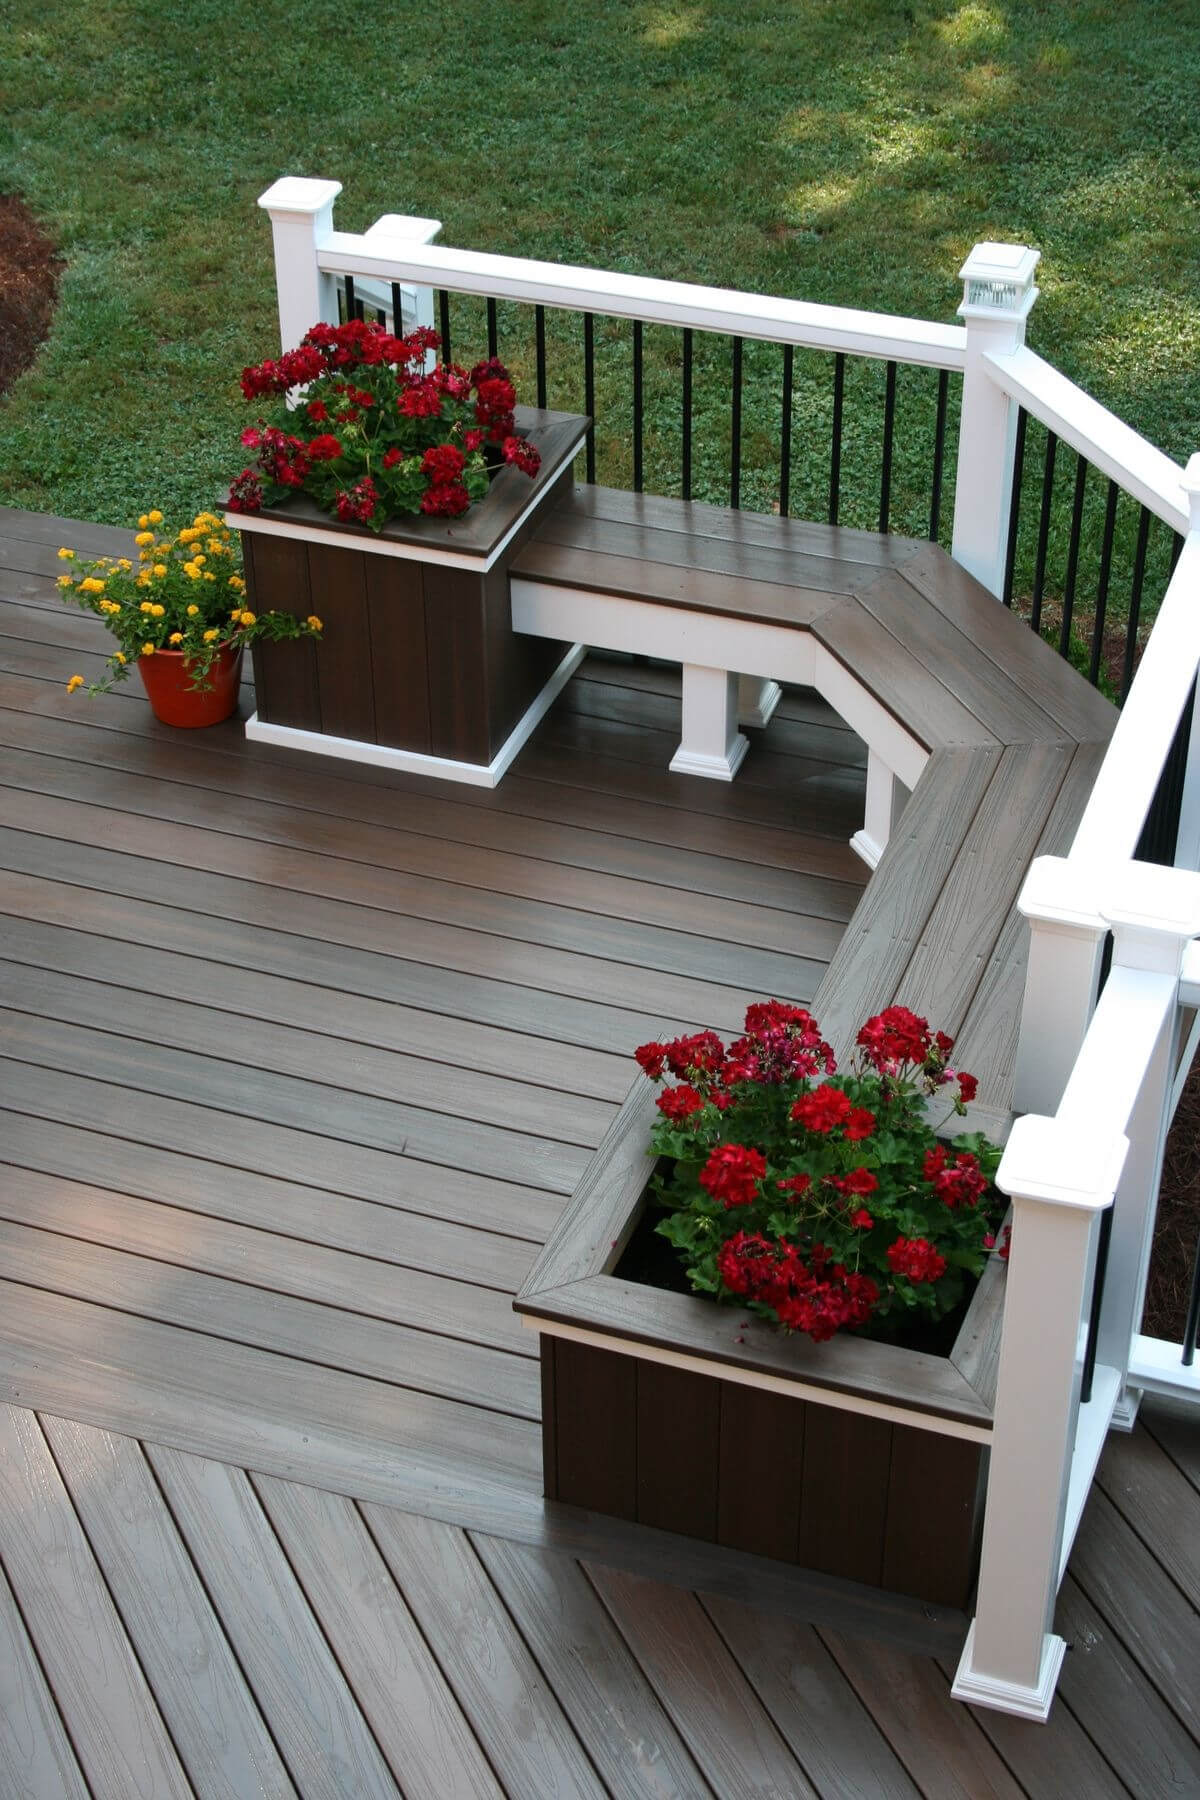 of adjustable deck on qvc planters watch large planter set railing